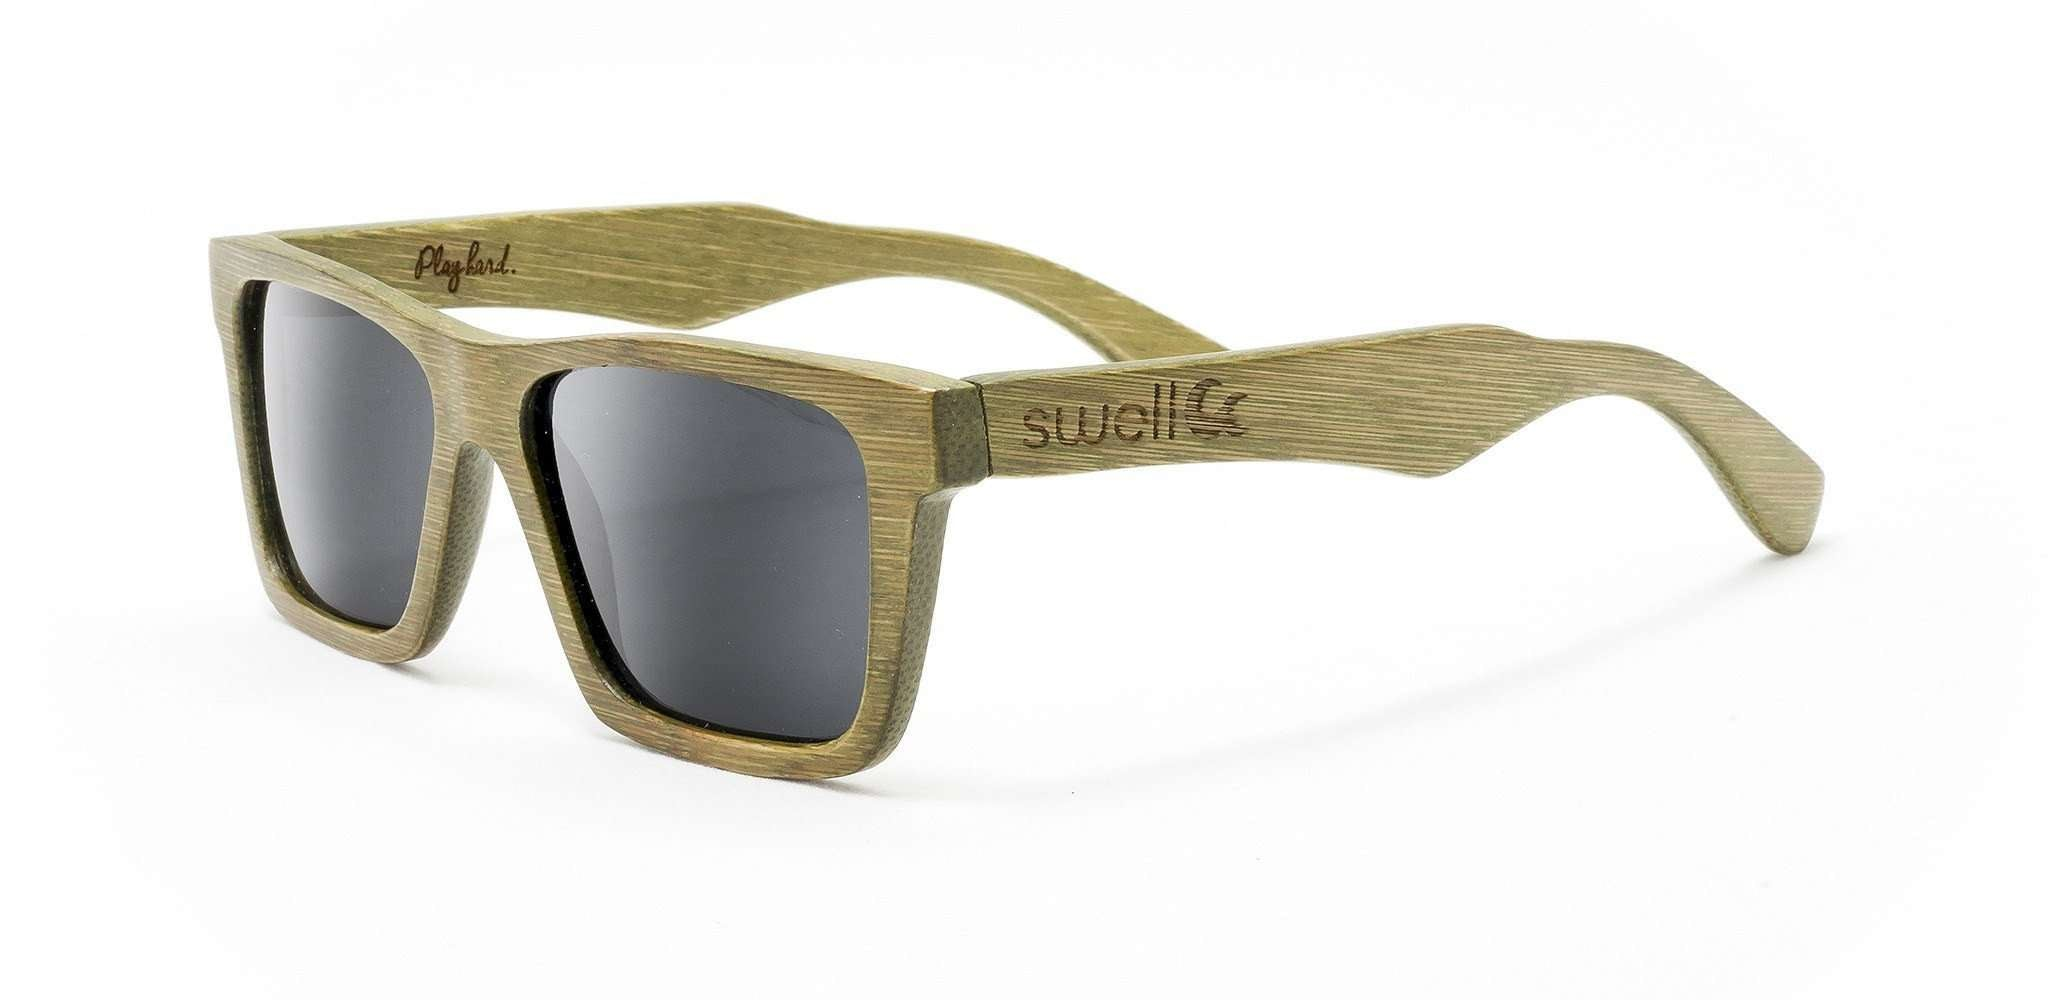 7f50c7825e3 Classic Green Polarized Bamboo Sunglasses - SwellVision. Classic Green  Polarized Bamboo Sunglasses - SwellVision